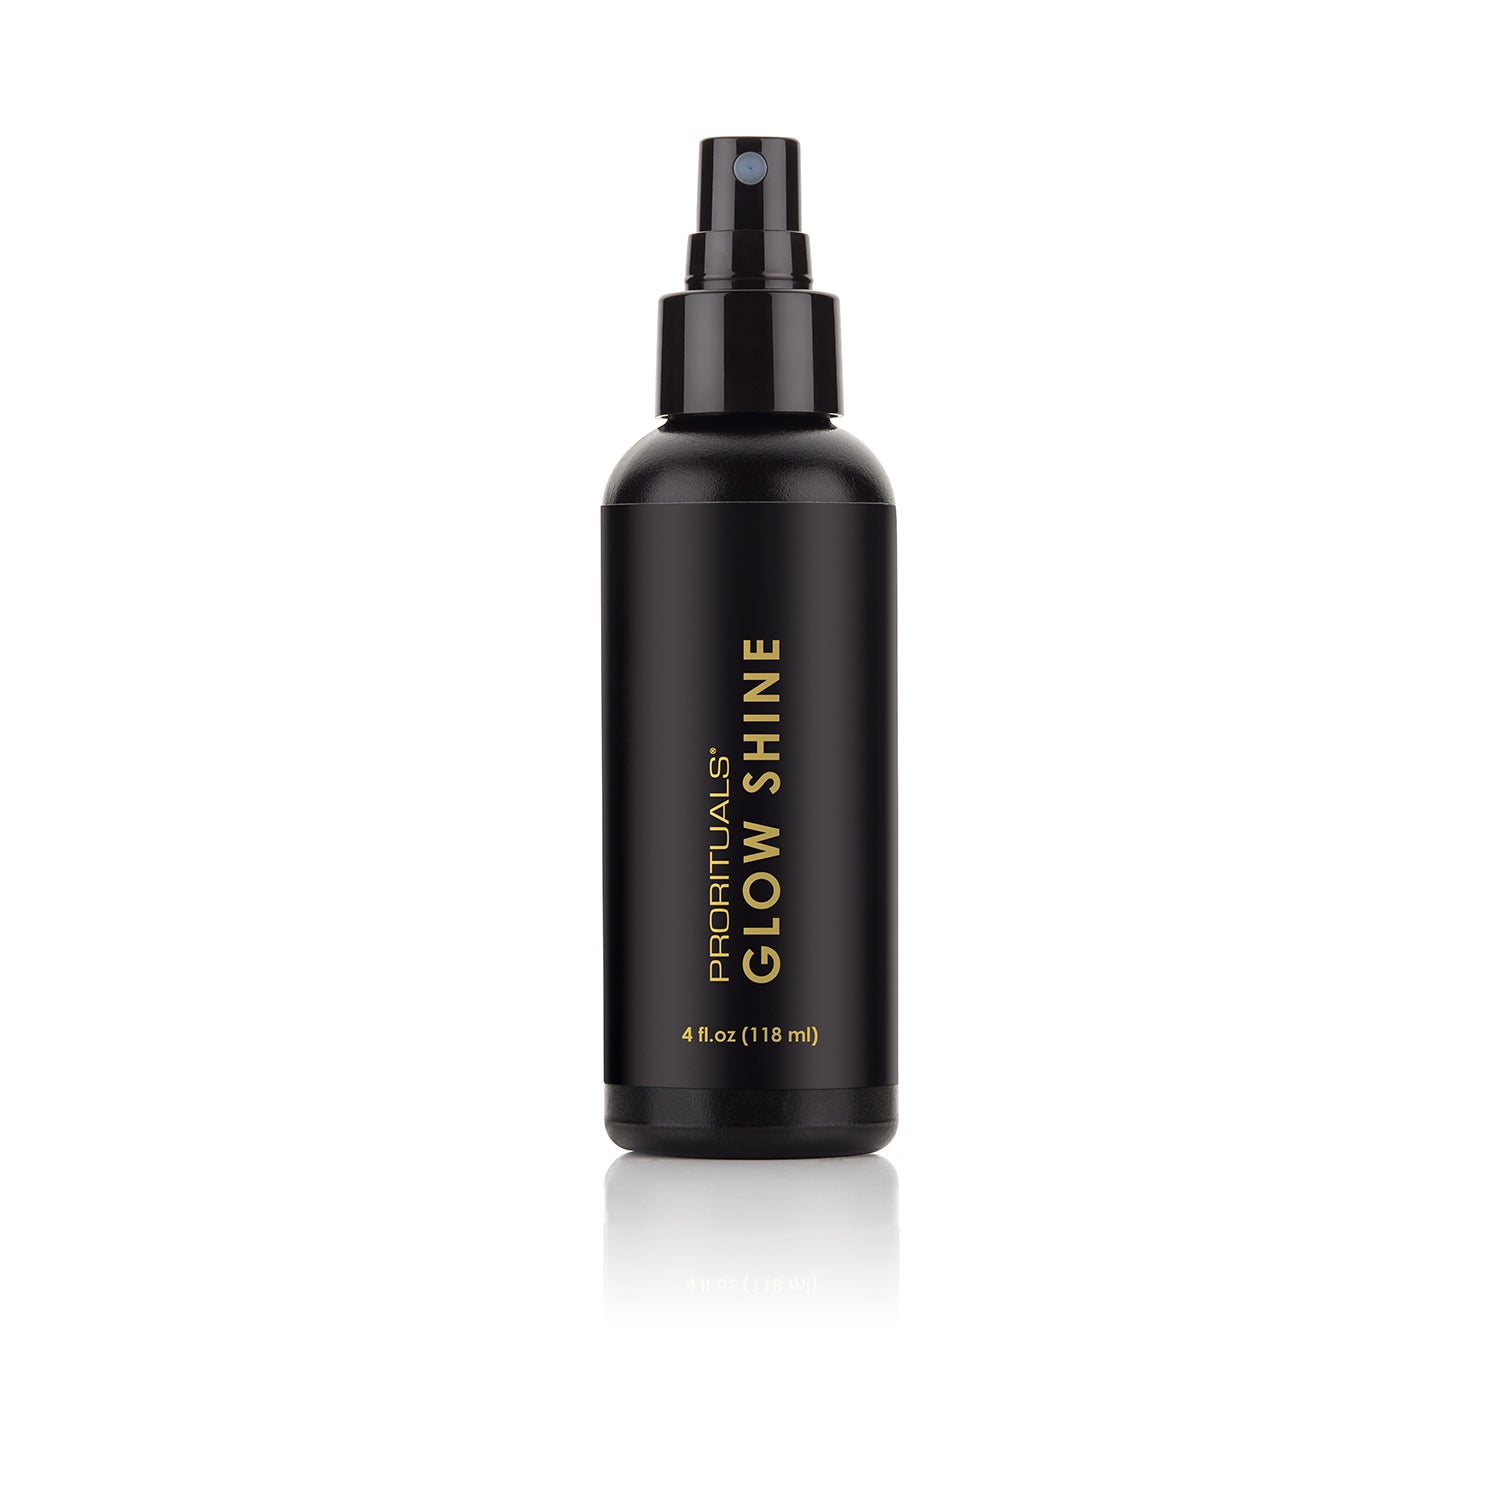 Glow Shine Spray - Prorituals